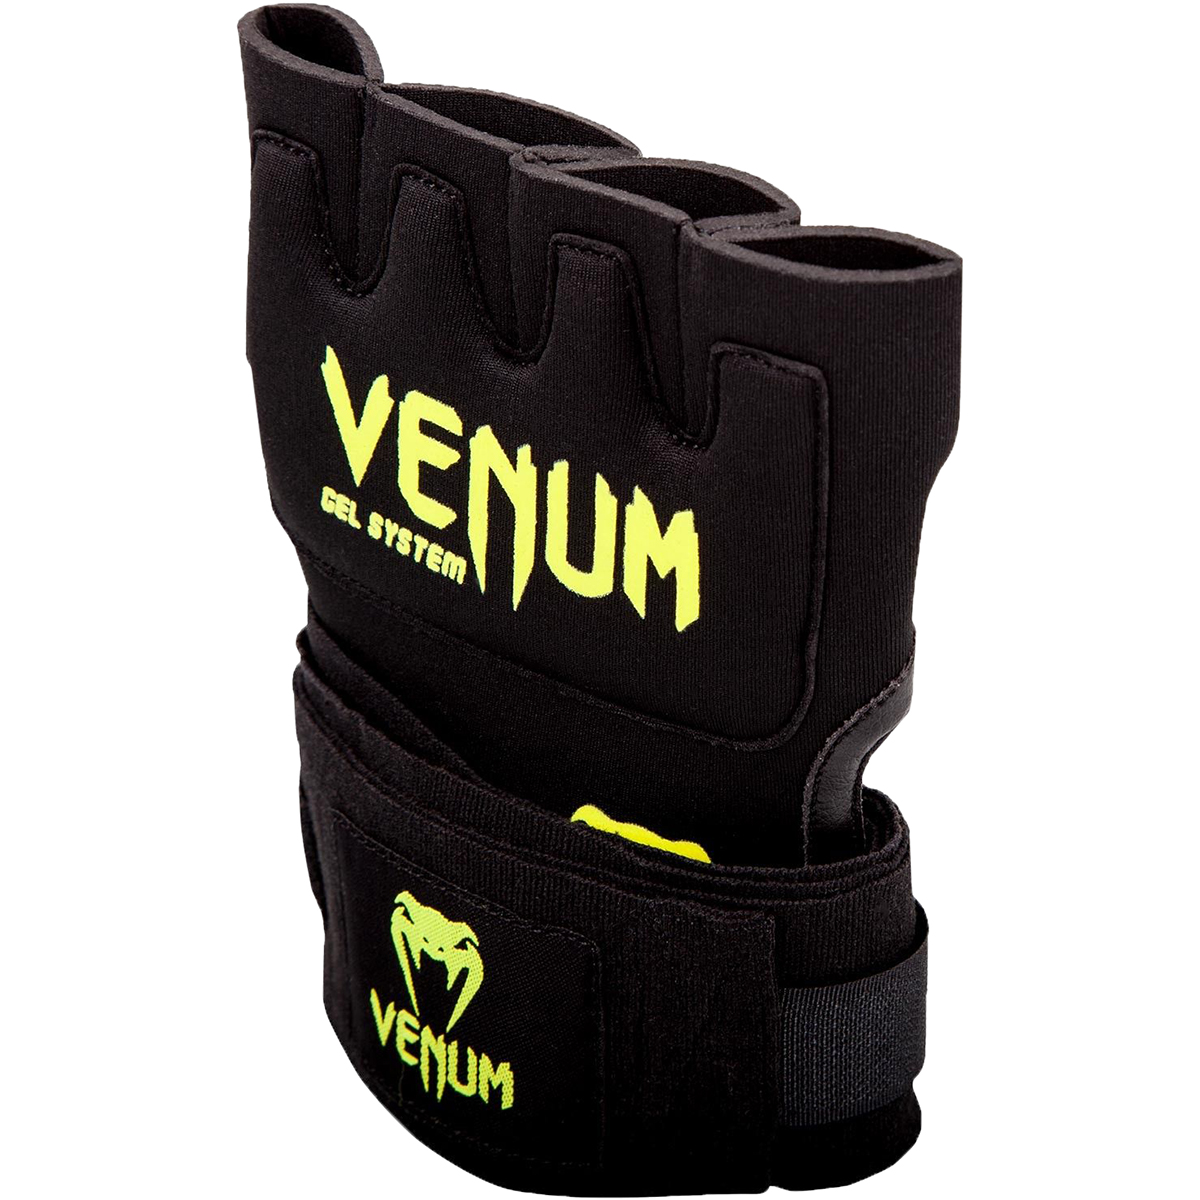 Venum-Kontact-Protective-Shock-Absorbing-Gel-MMA-Glove-Wraps thumbnail 34